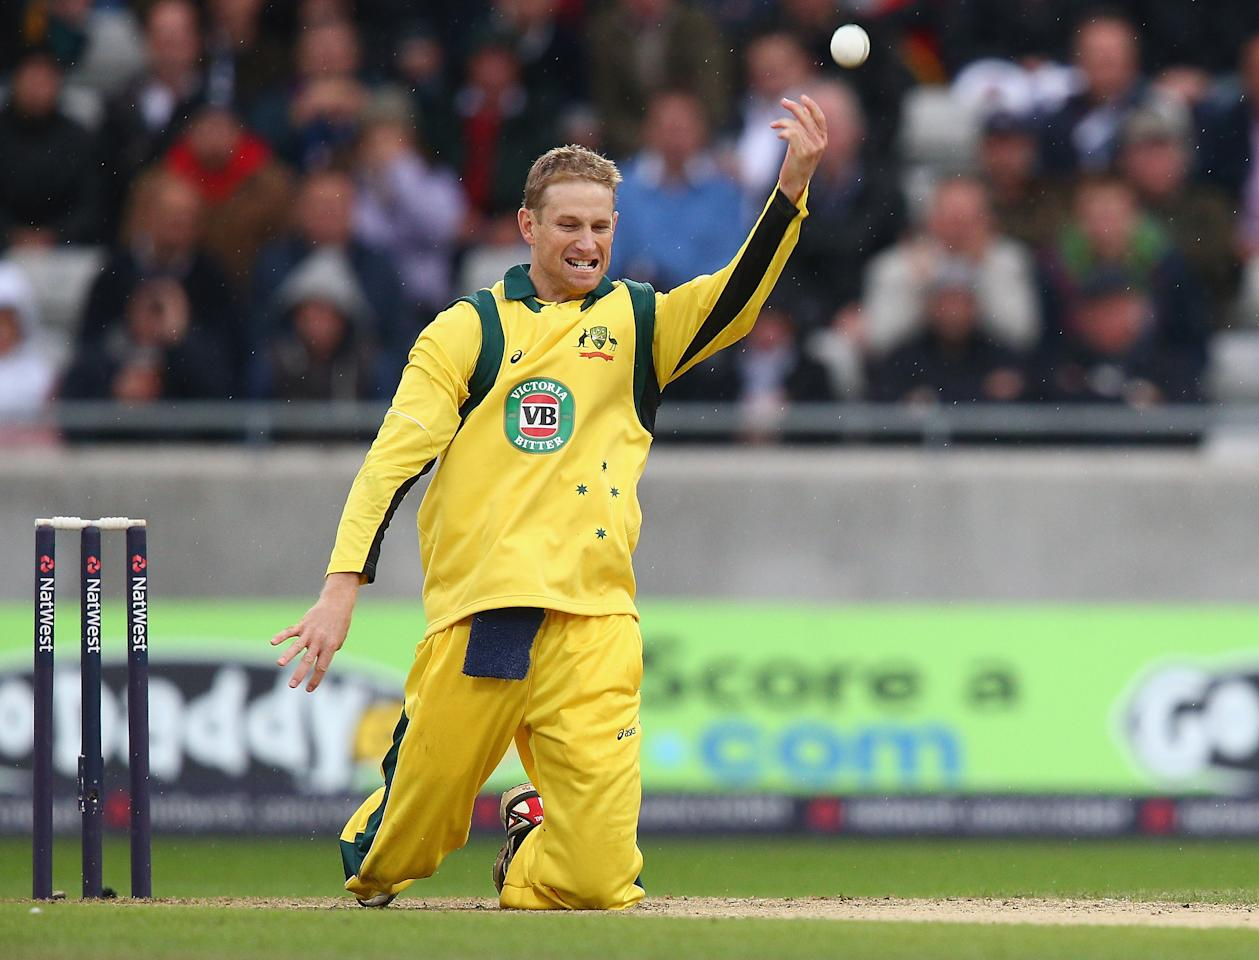 BIRMINGHAM, ENGLAND - SEPTEMBER 11:  Adam Voges of Australia celebrates dismissing Joe Root of England caught and bowled during the third NatWest One Day International Series match between England and Australia at Edgbaston on September 11, 2013 in Birmingham, England.  (Photo by Clive Mason/Getty Images)